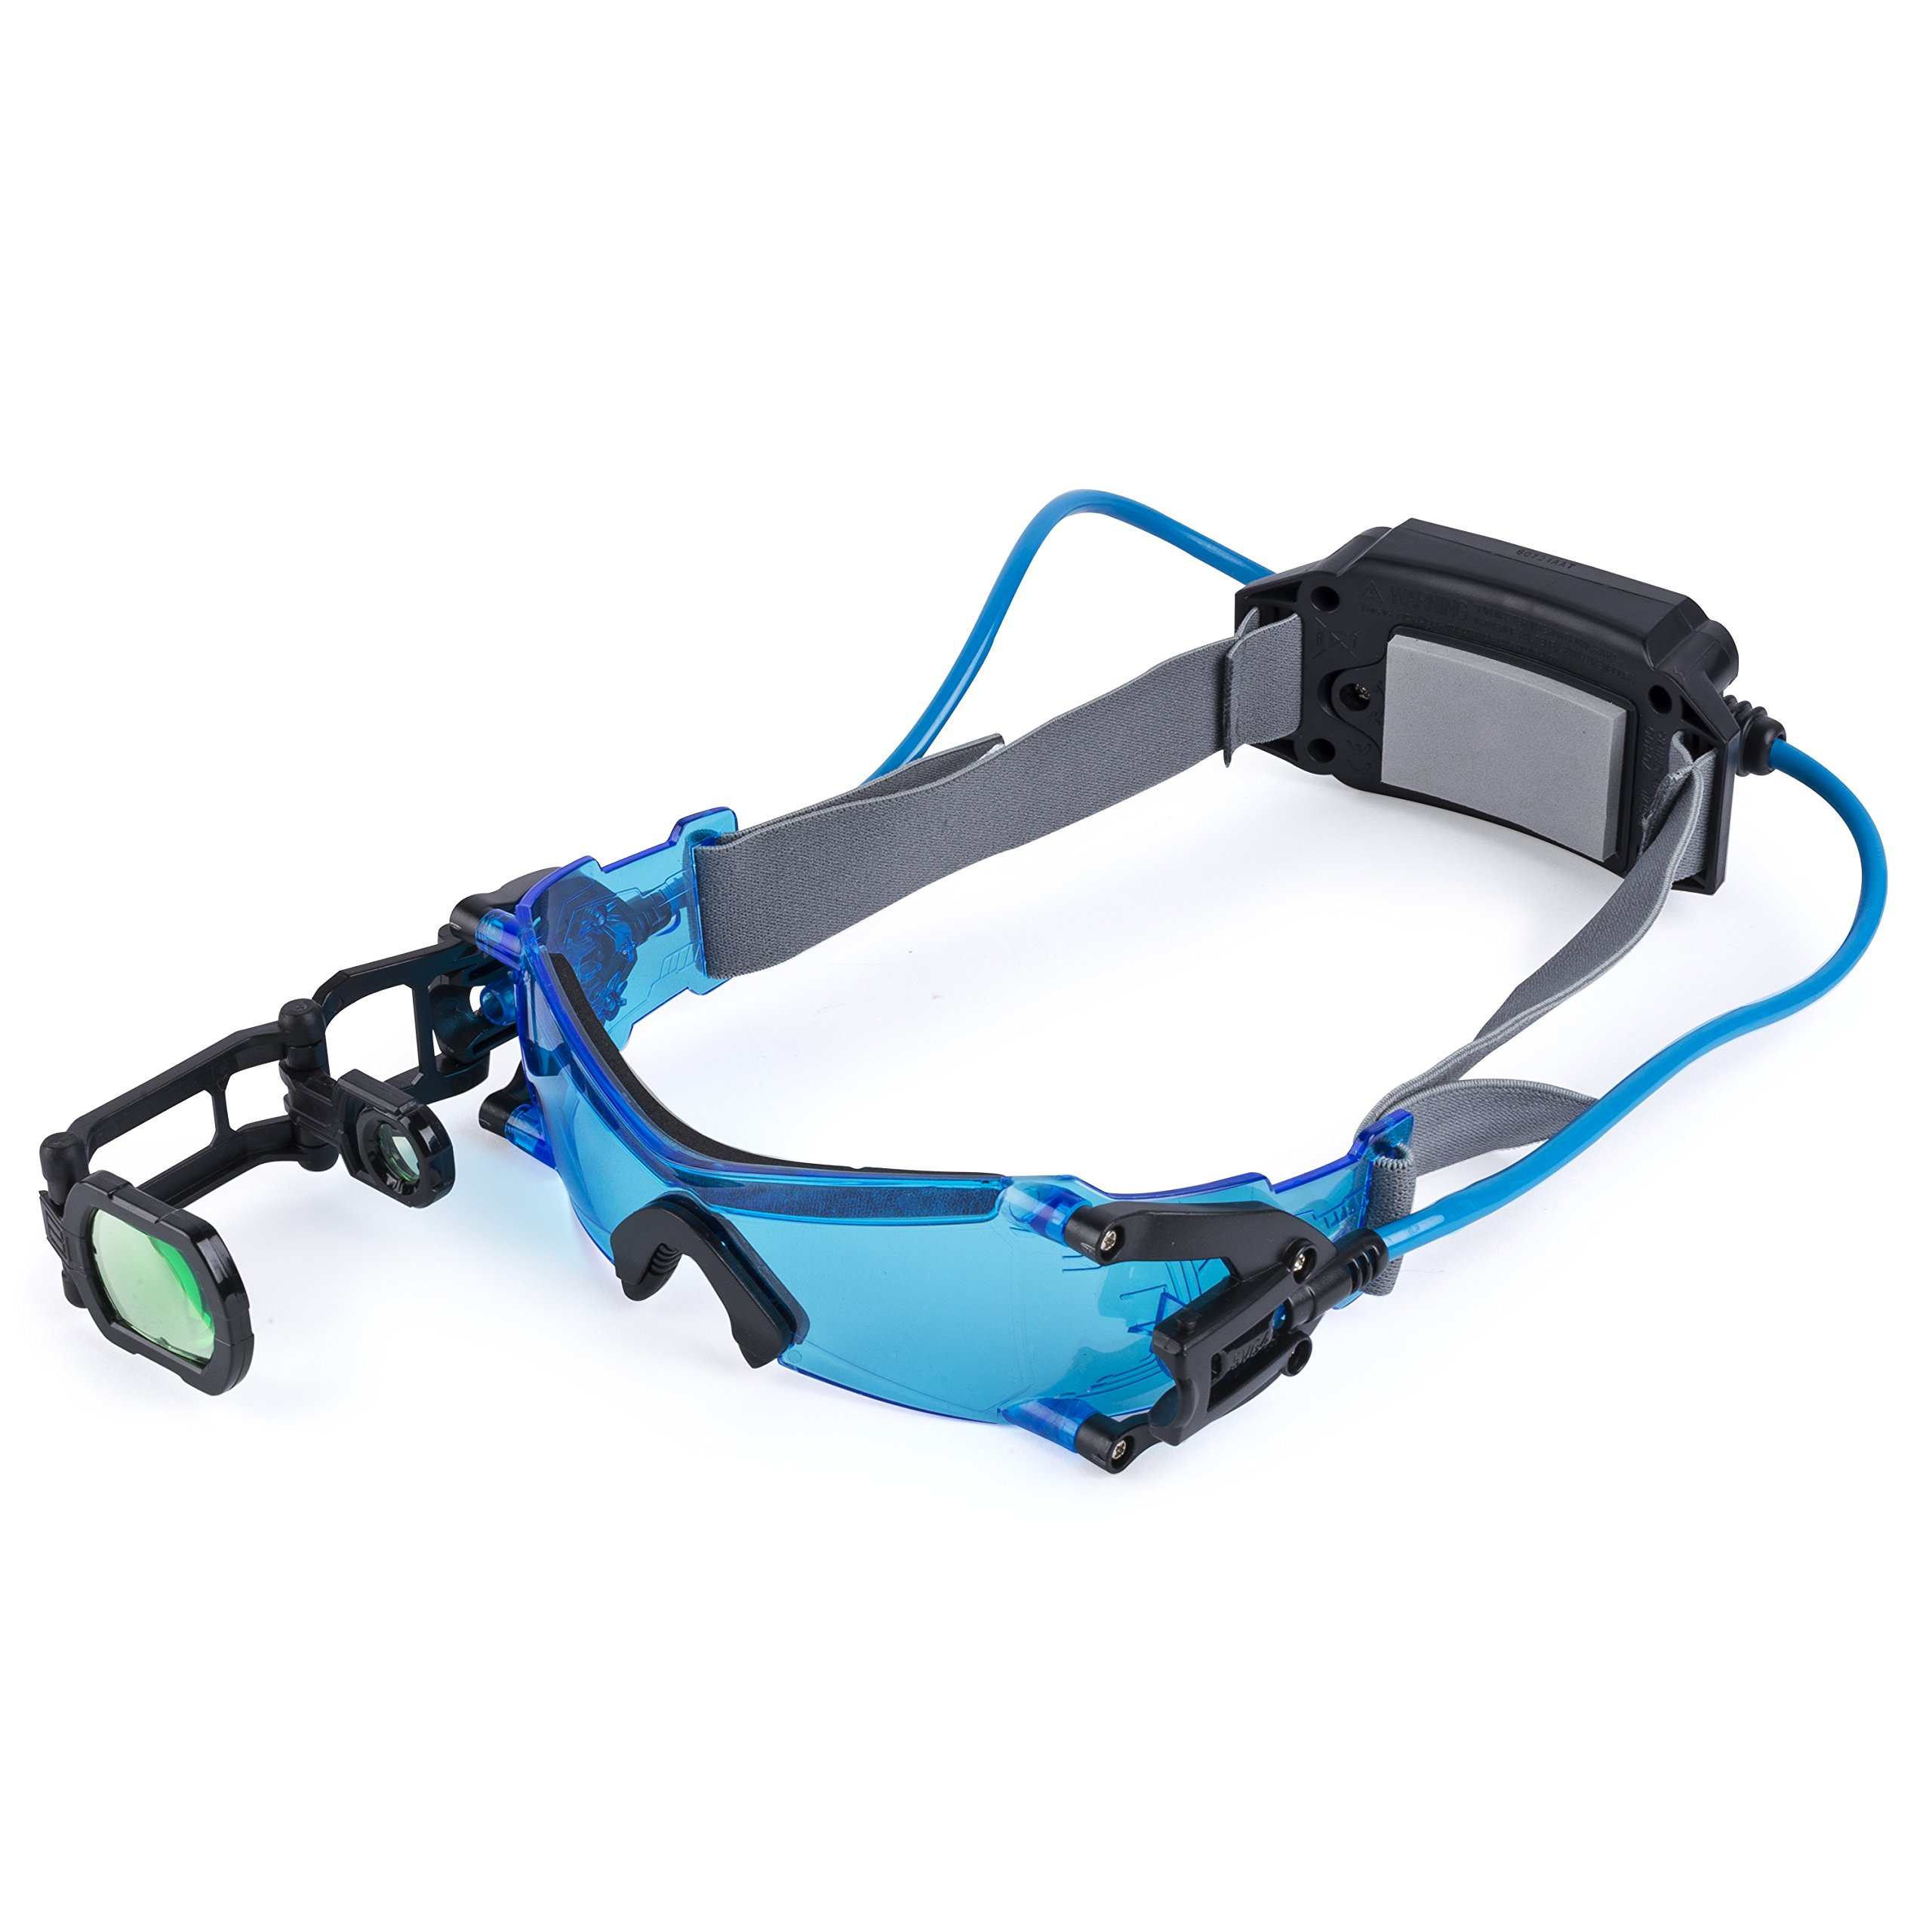 Spy Gear Spy Night Goggles - Features Lighted Blue Lenses, Retractable Scope, Adjustable Head Strap by Spy Gear